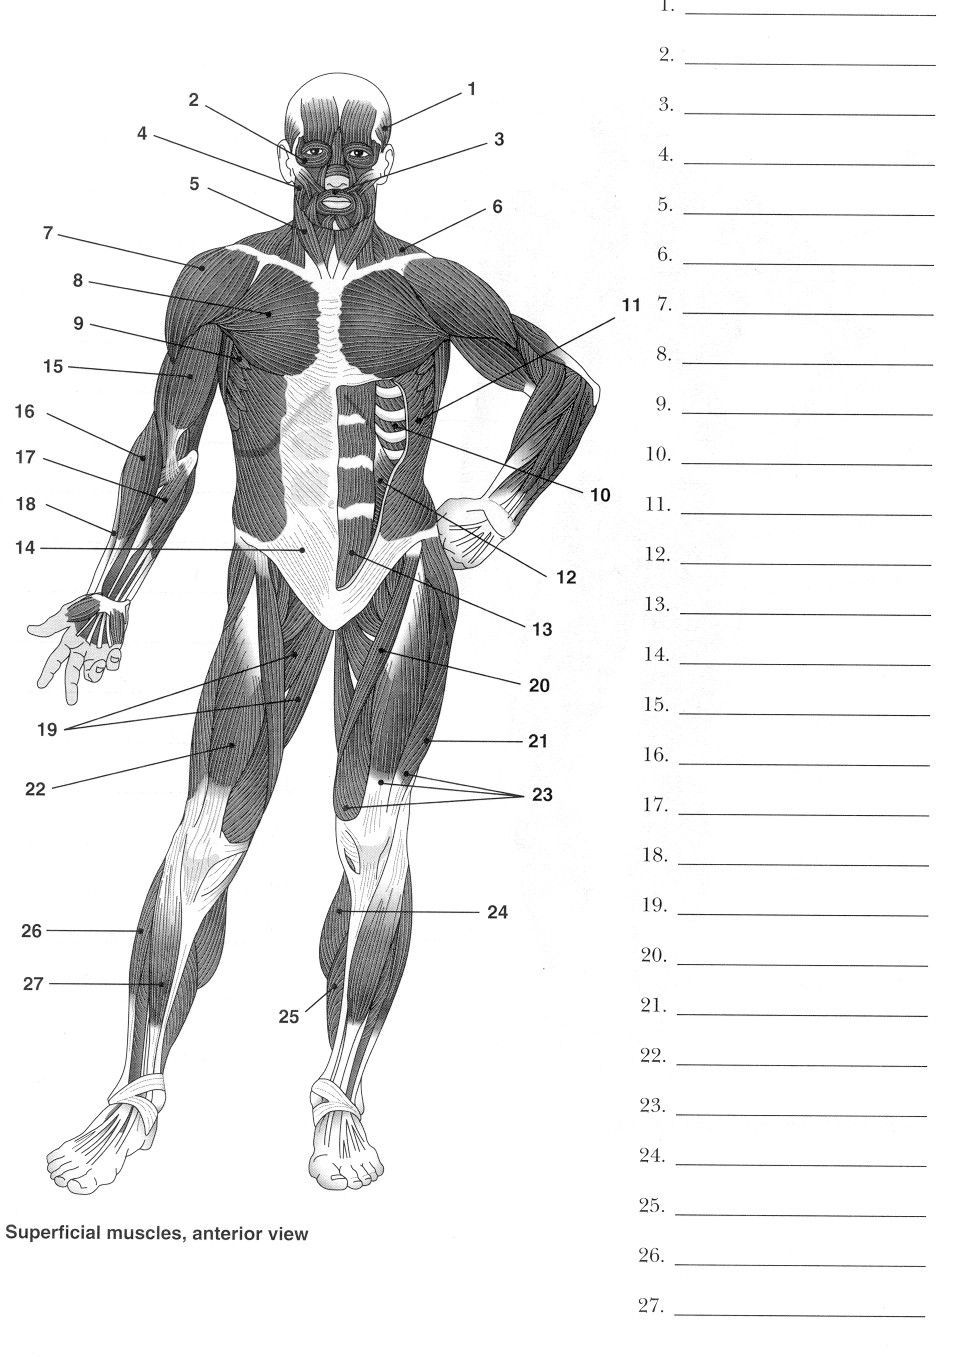 Efbd D Ef Fe Ddbe C Cba Bb A further B Postmuscles additionally C E Ee F Ddfa B E A Af Heart Anatomy Body Anatomy besides F Cuerpohumano besides F Ea C C F E. on fill in the blank muscle worksheets